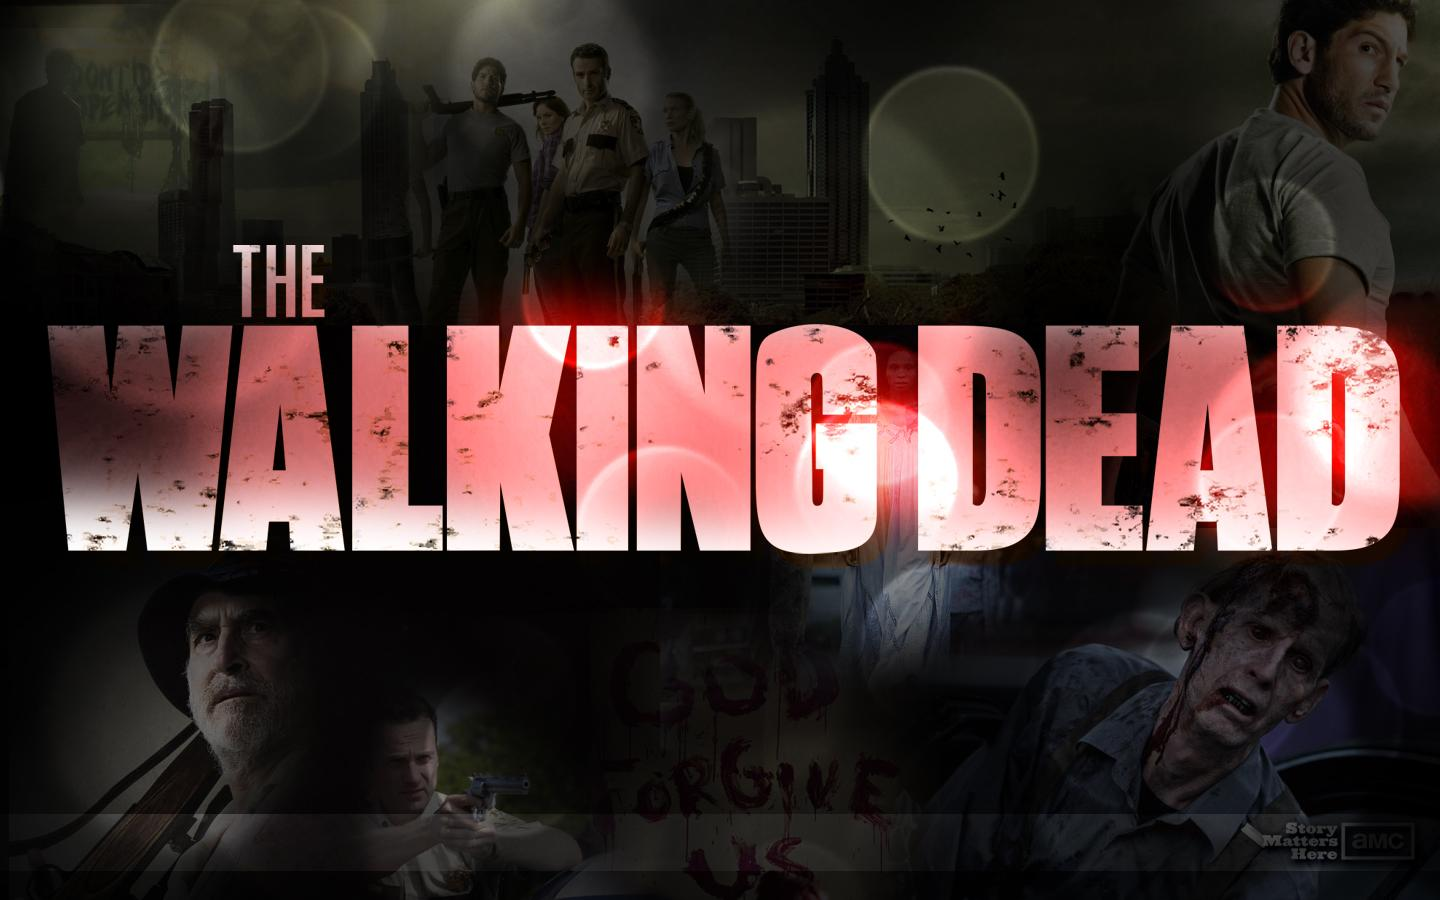 The Walking Dead Wallpapers HD Wallpapers Backgrounds Photos 1440x900